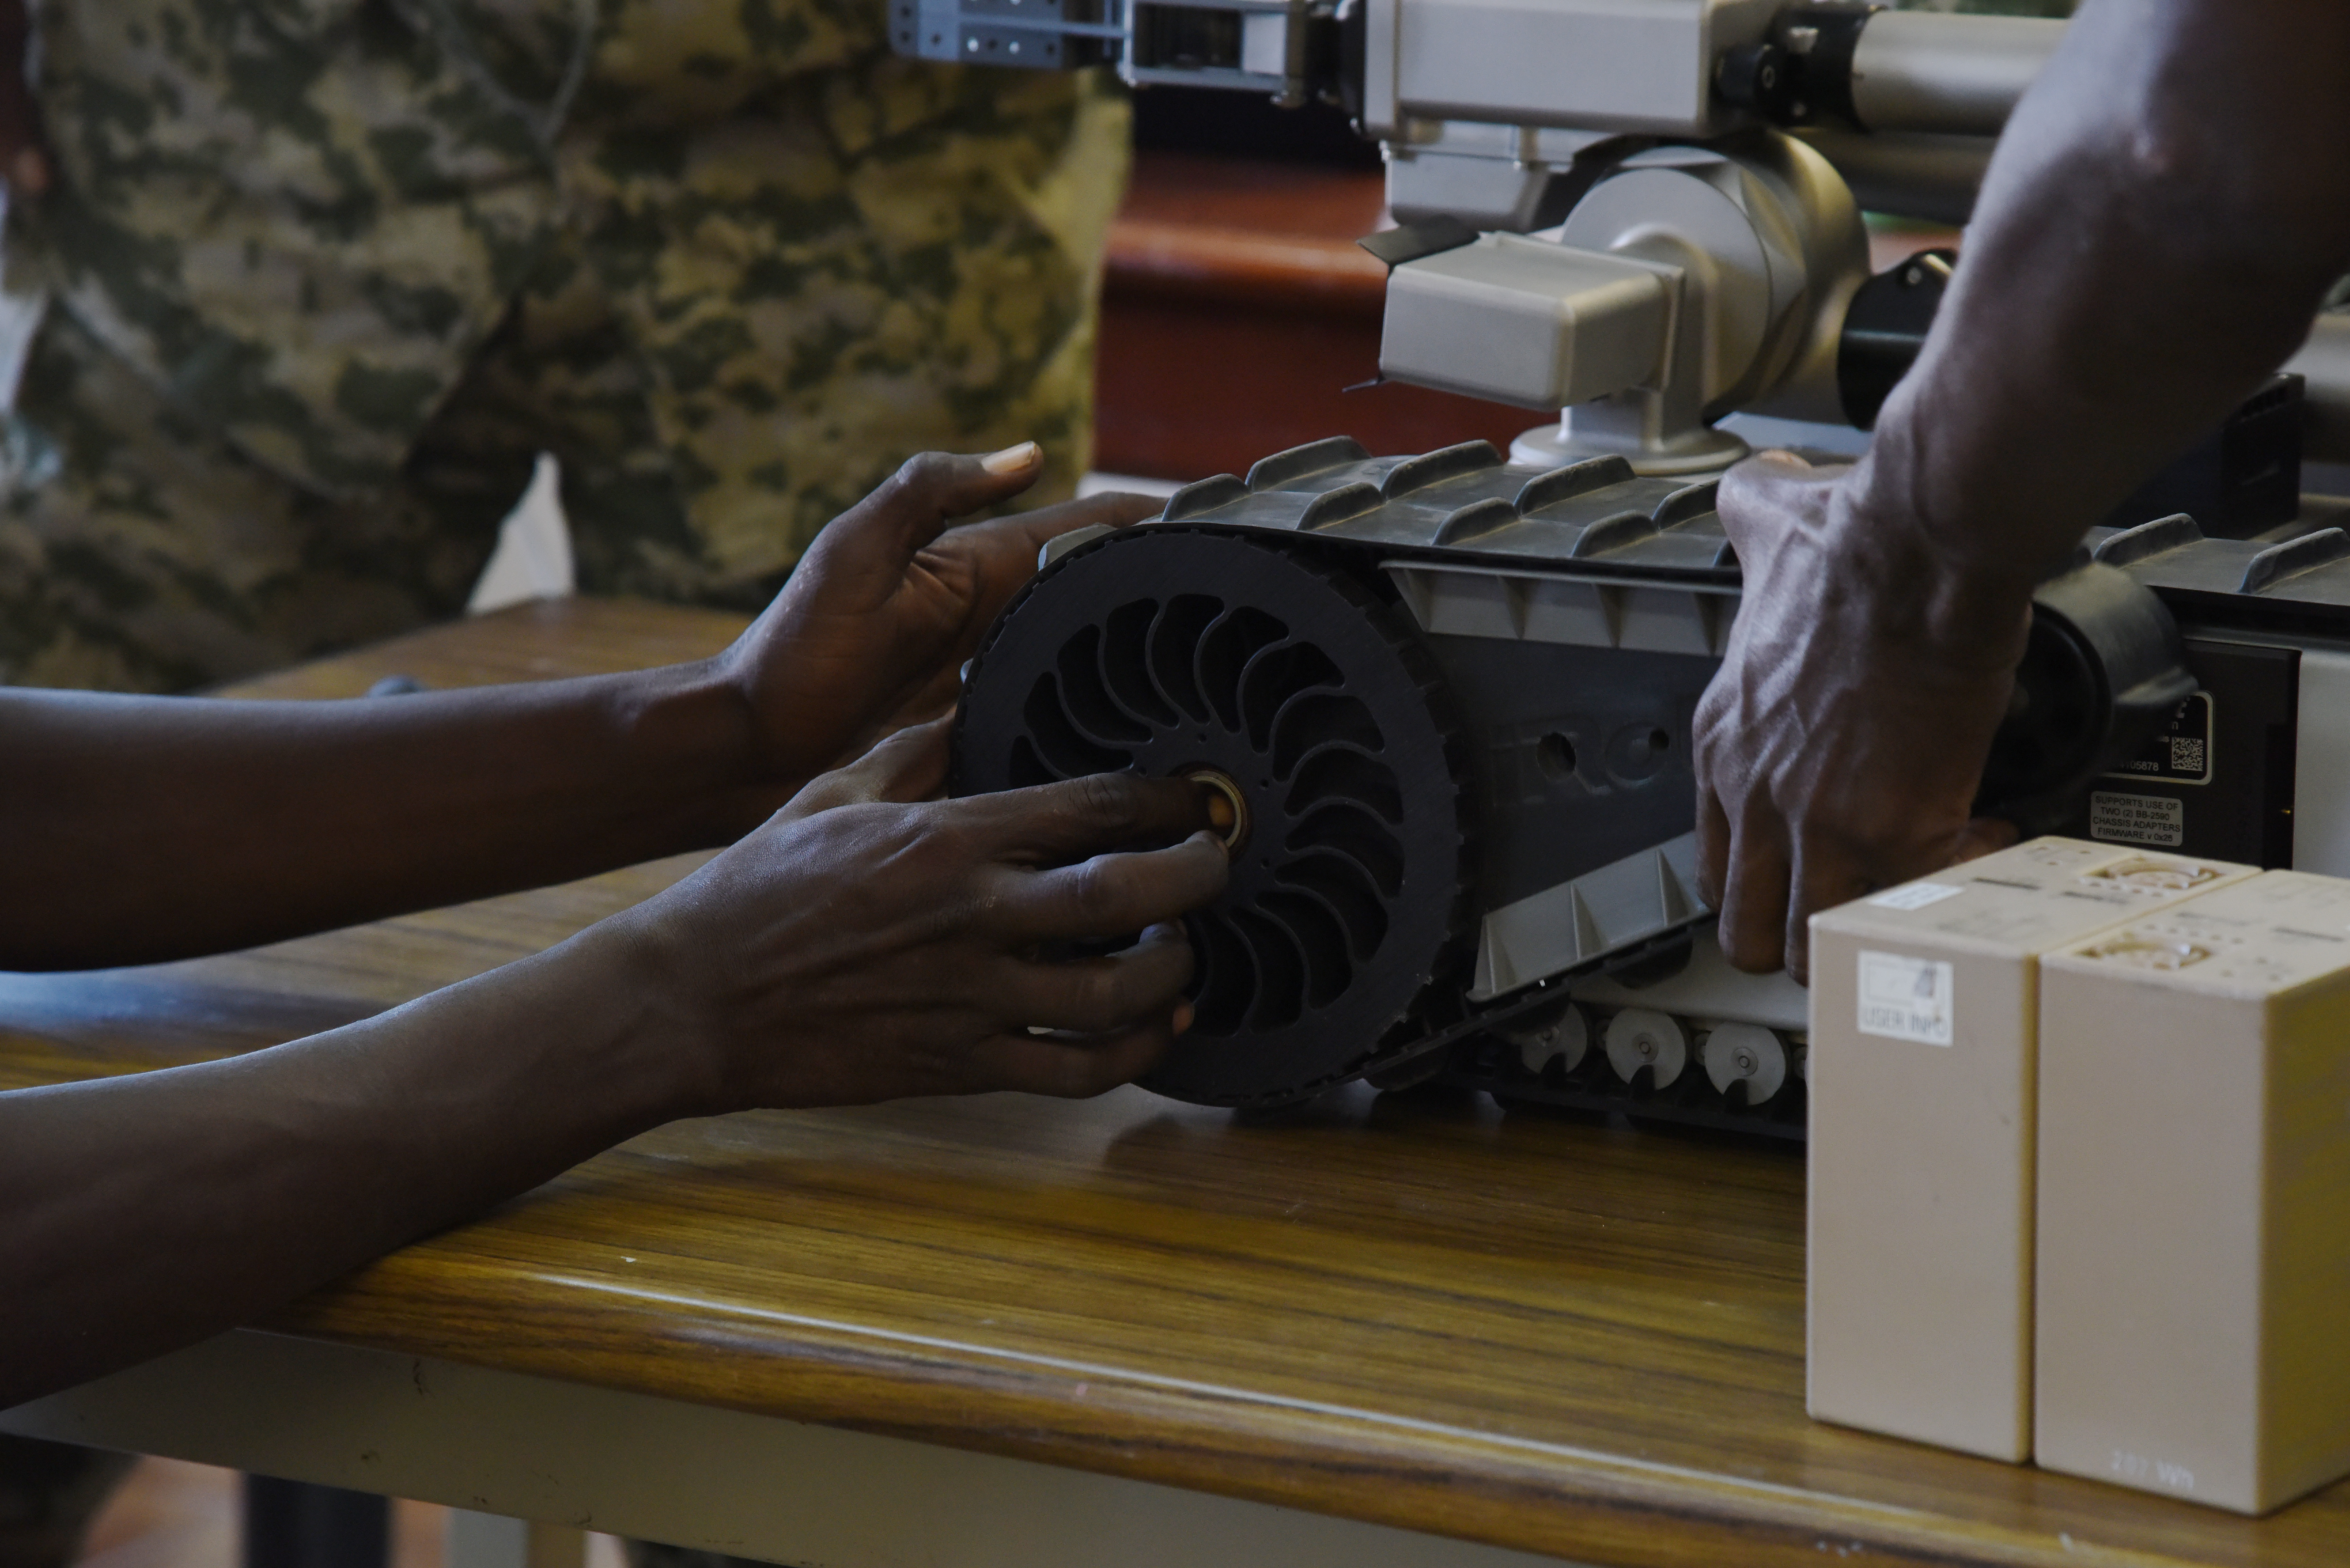 Members of the Djibouti Armed Forces (FAD) learn how set up the iRobot 510 Packbot during a class in Djibouti, Oct. 12, 2015. Service members also learned how to use the robot to search under vehicles for explosive devices. (U.S. Air Force photo by Staff Sgt. Maria Bowman)